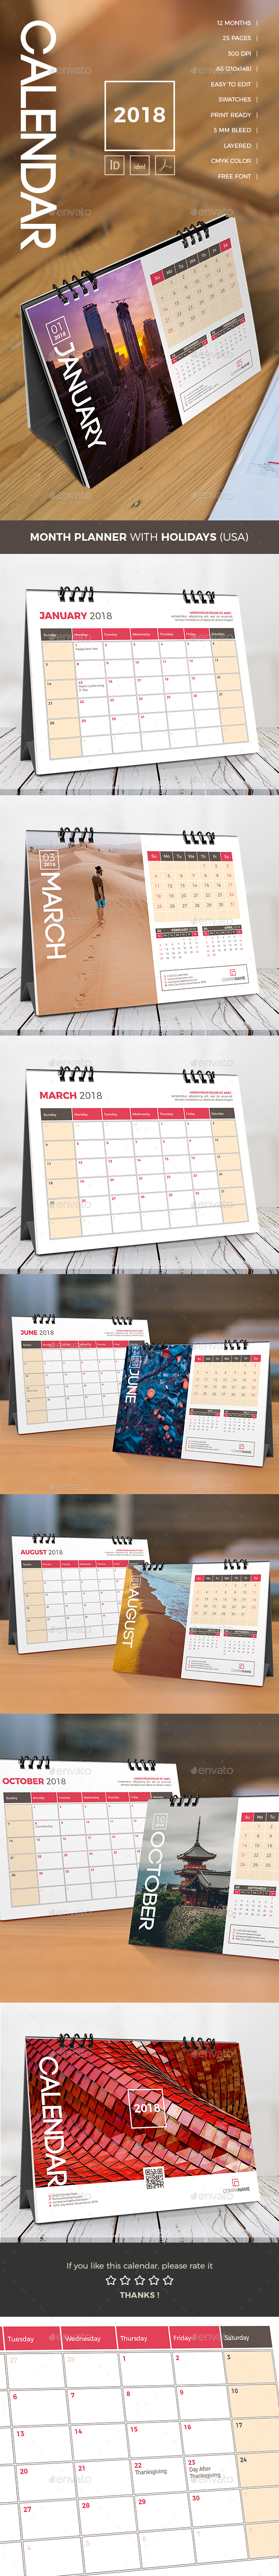 GraphicRiver Desk Calendar Planner 2018 21132967